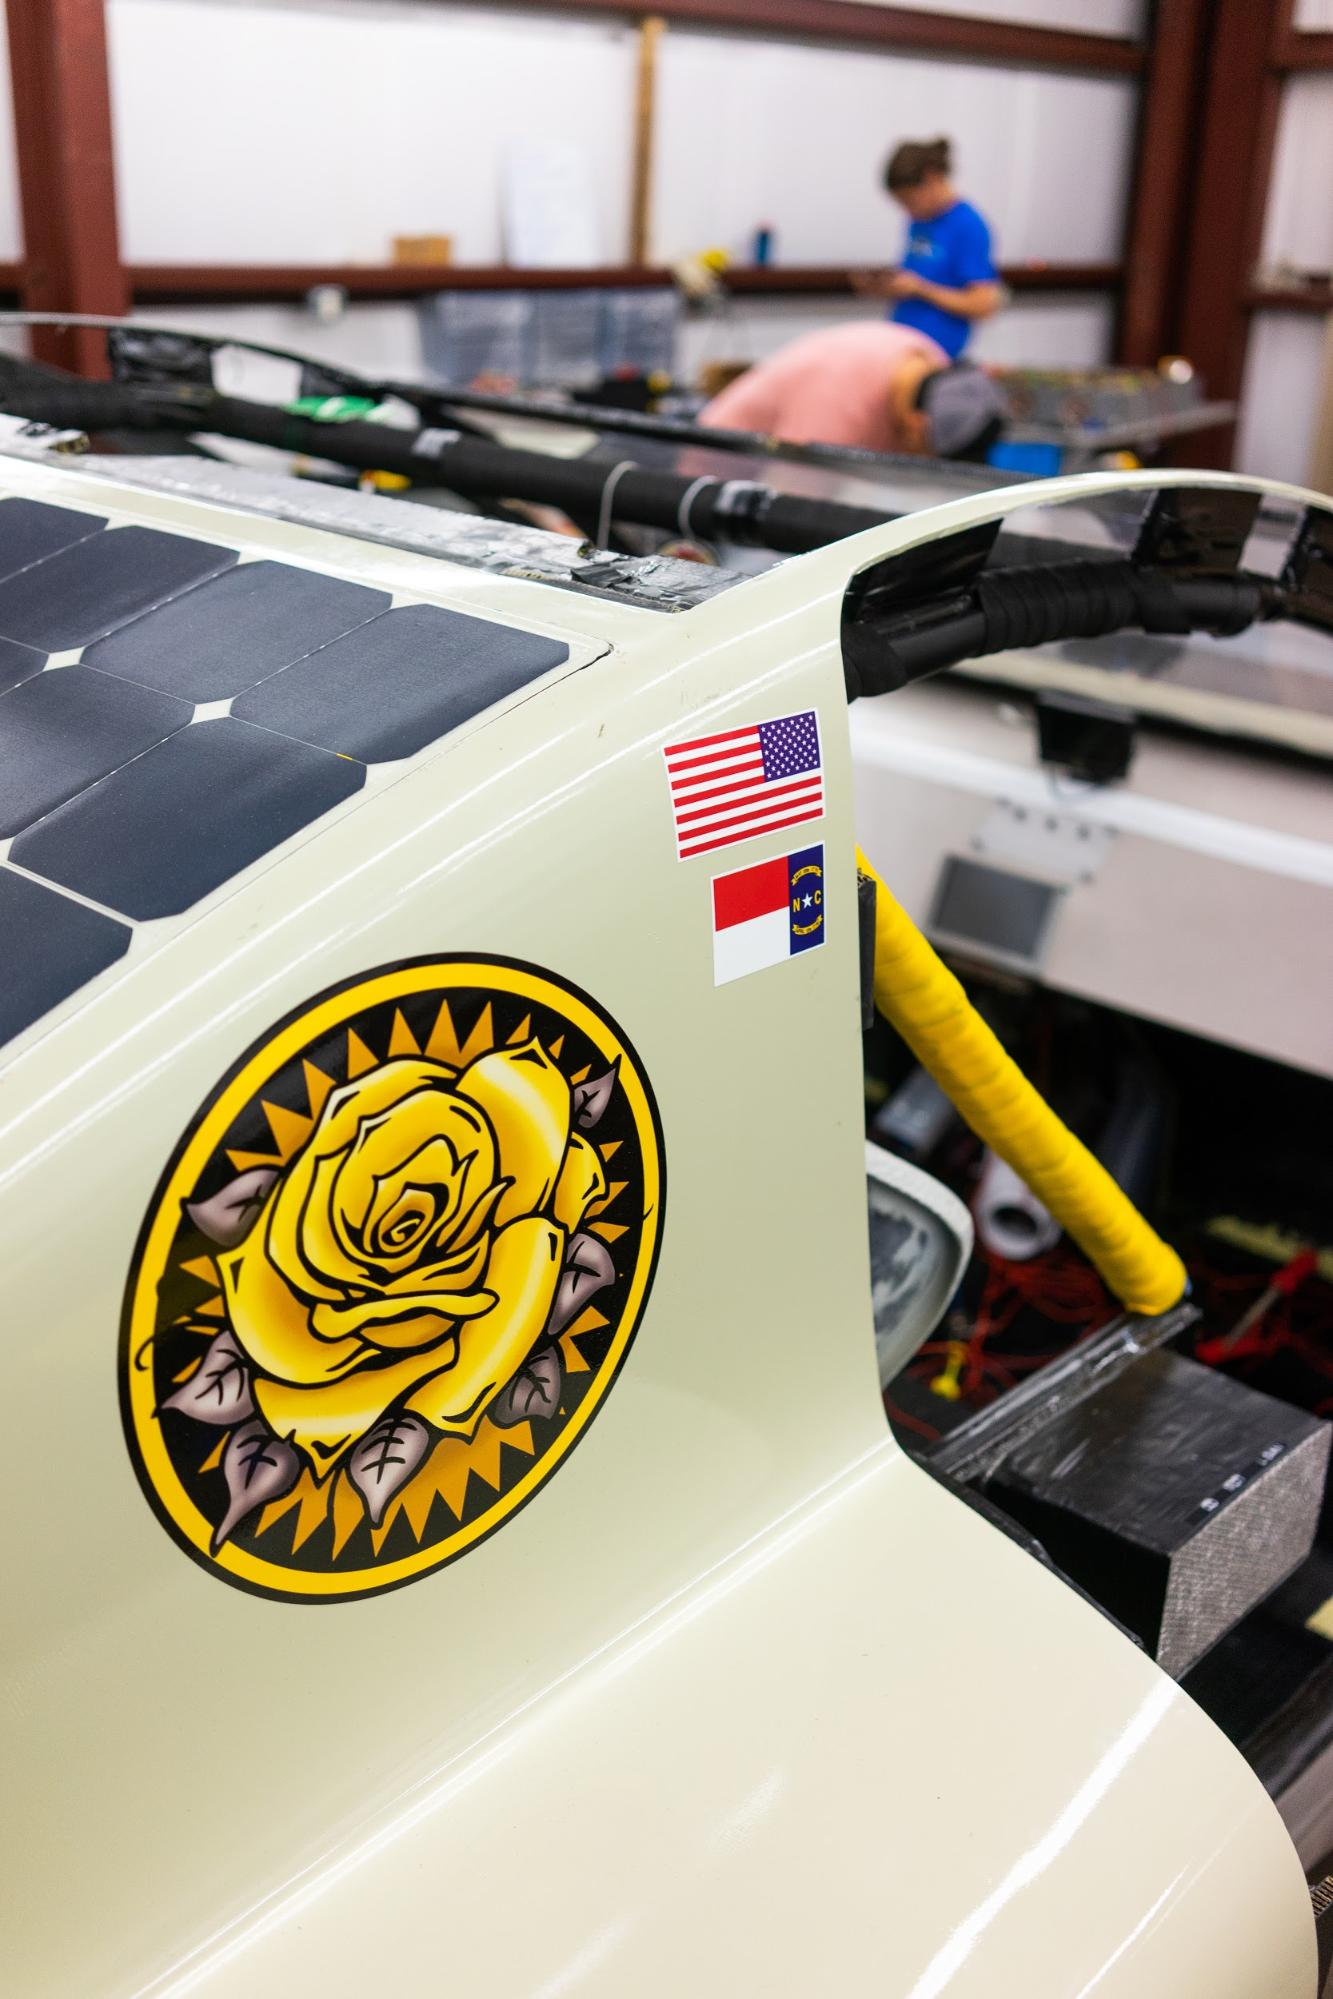 Asc 2018 Team Sunergy Appalachian State University Joy Long Van Electrical Fuse Box The Is Still Finishing Up Final Touches On Car Before Inspections Begin Work